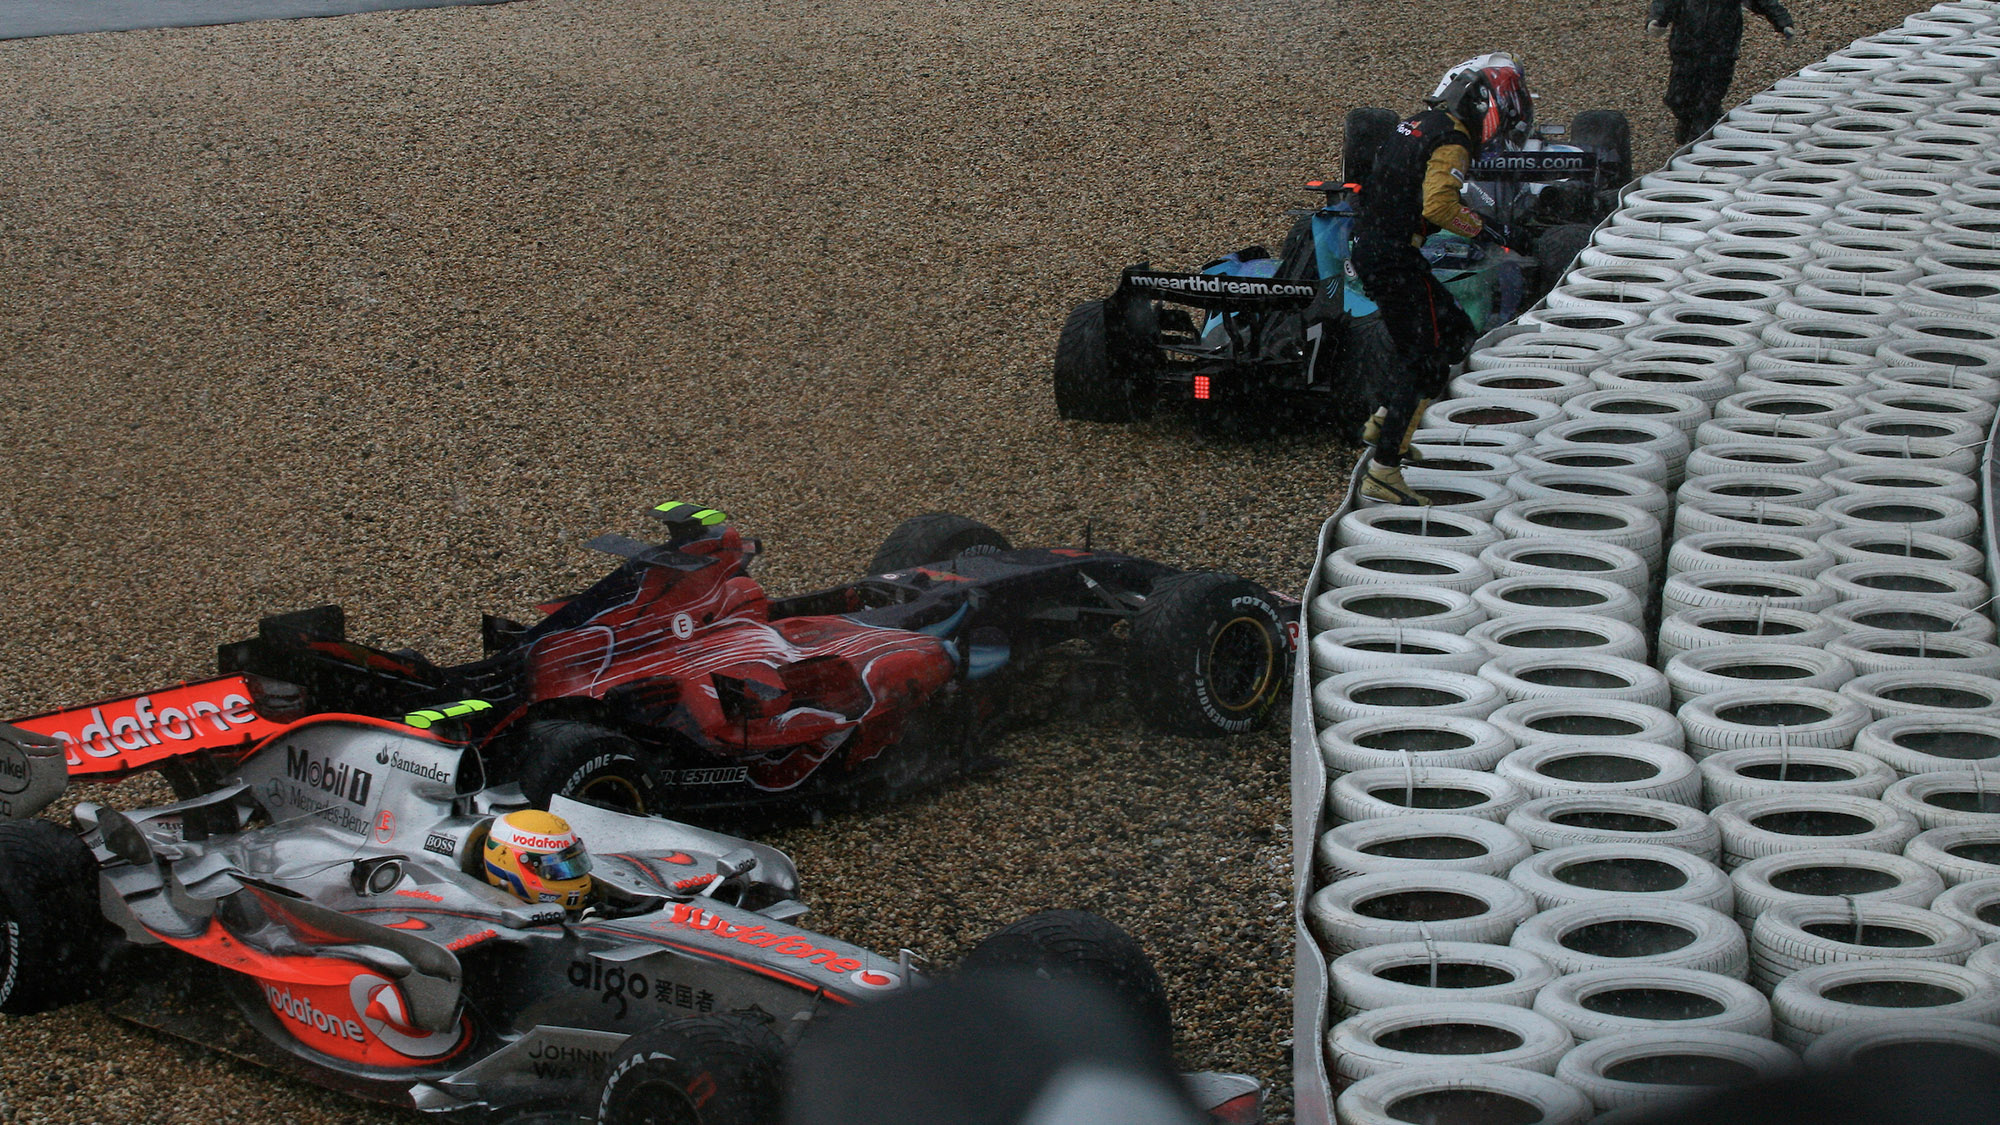 Lewis Hamilton and Scott Speed's cars among those crashed out of the 2007 European F1 Grand Prix at the Nurburgring